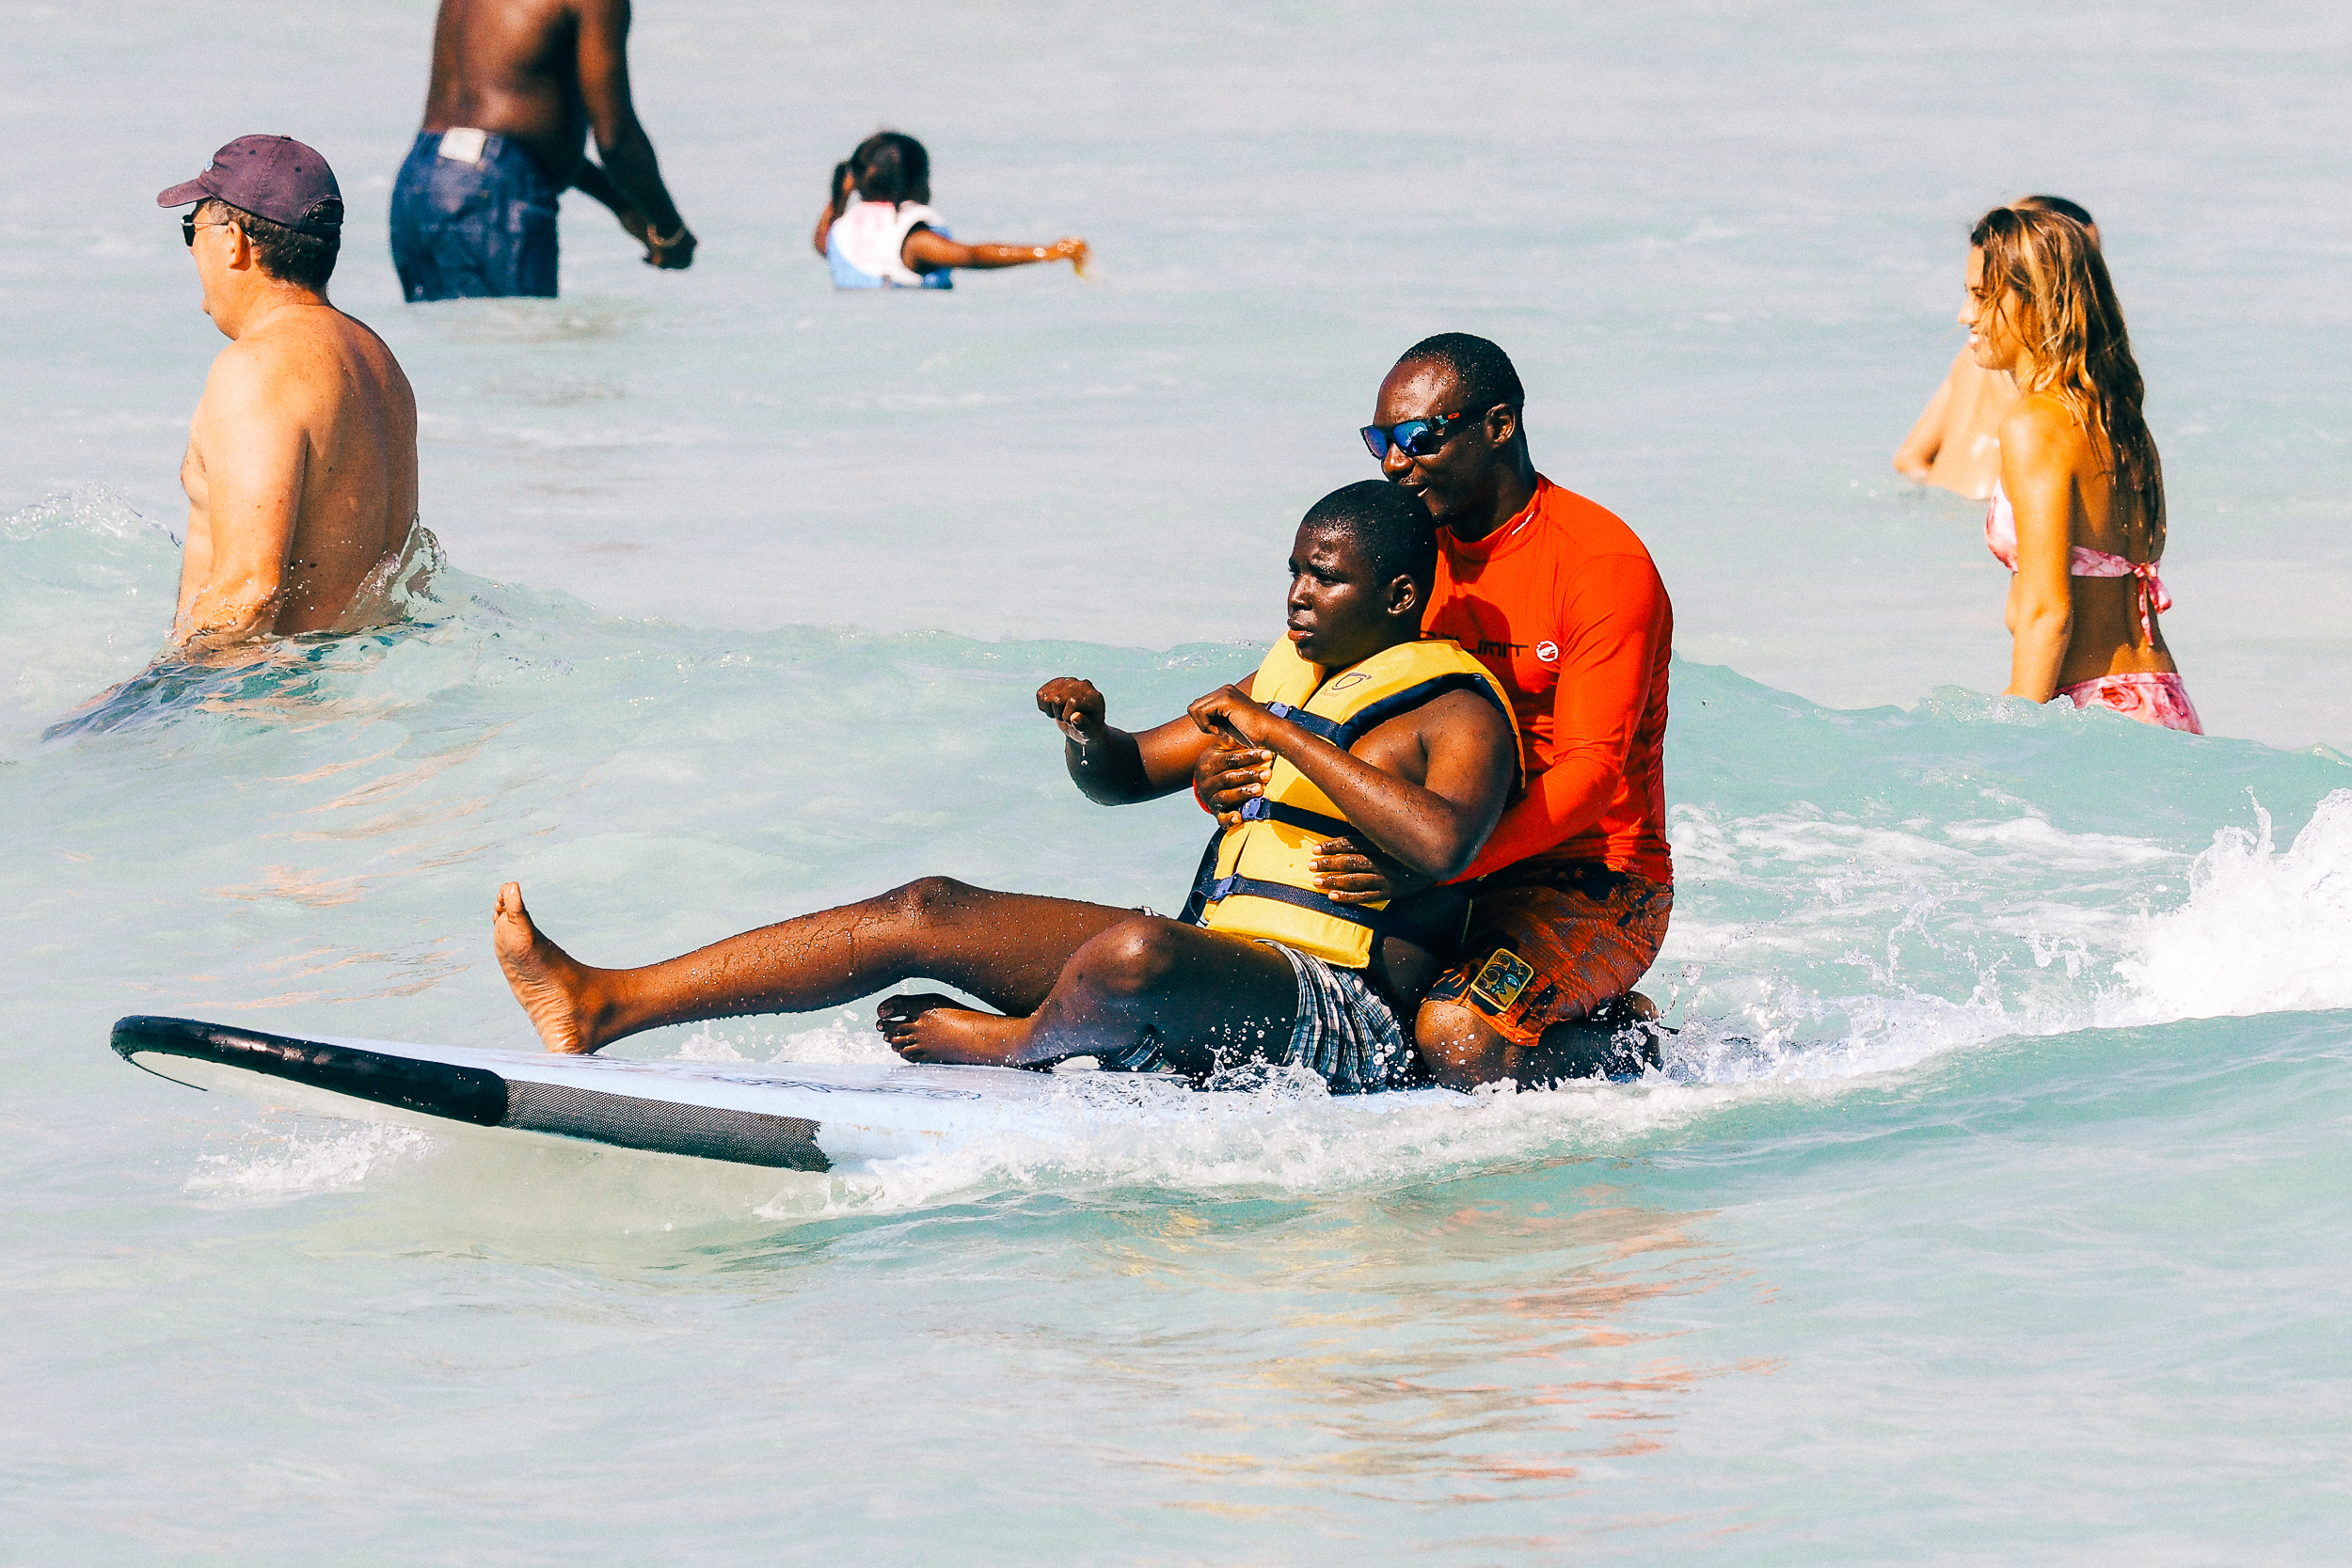 Christian-Surfers-Barbados-2.jpg